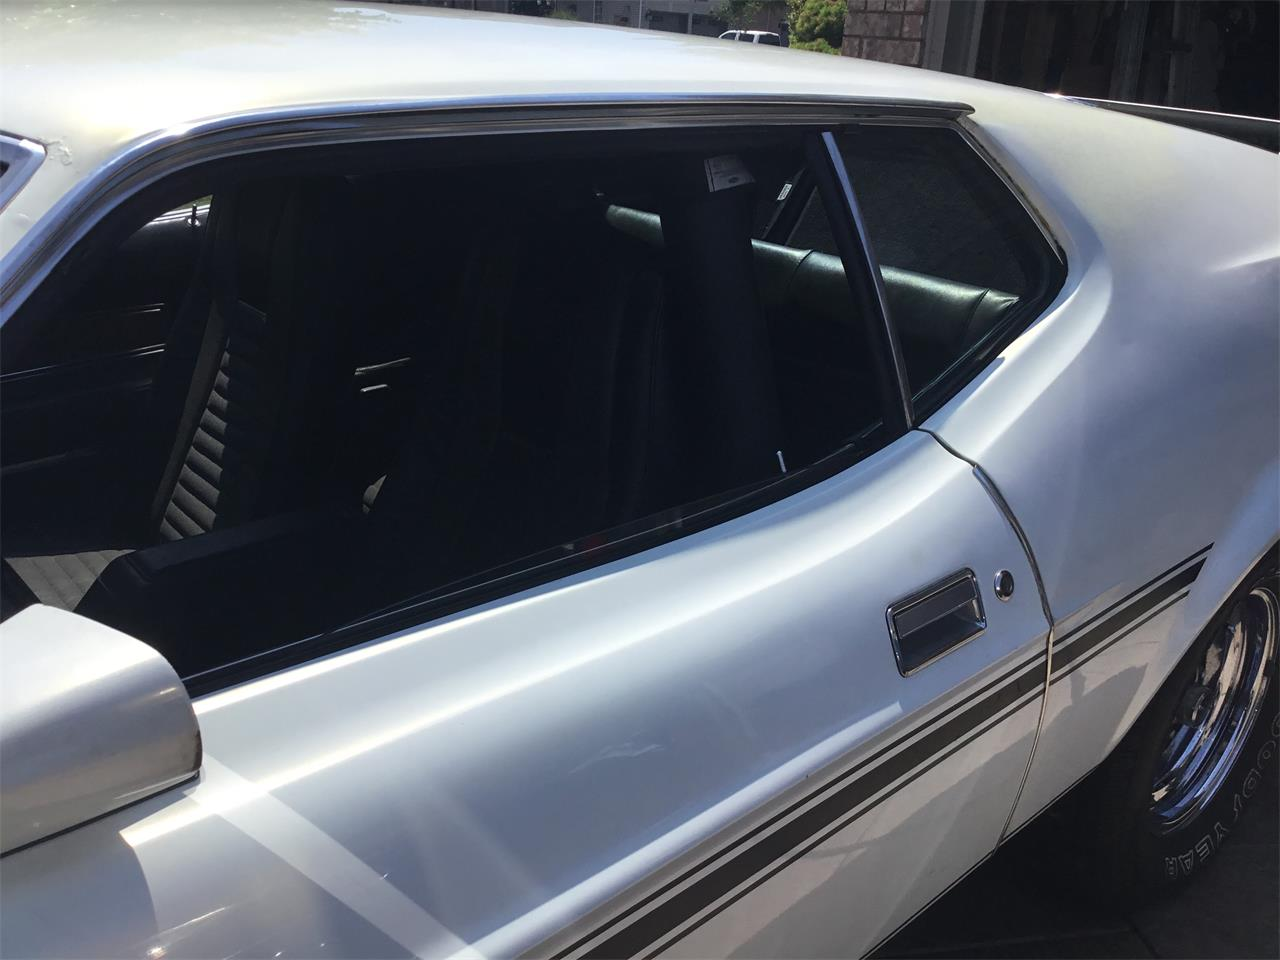 Large Picture of Classic '71 Ford Mustang Boss located in Ontario Offered by a Private Seller - QHGD